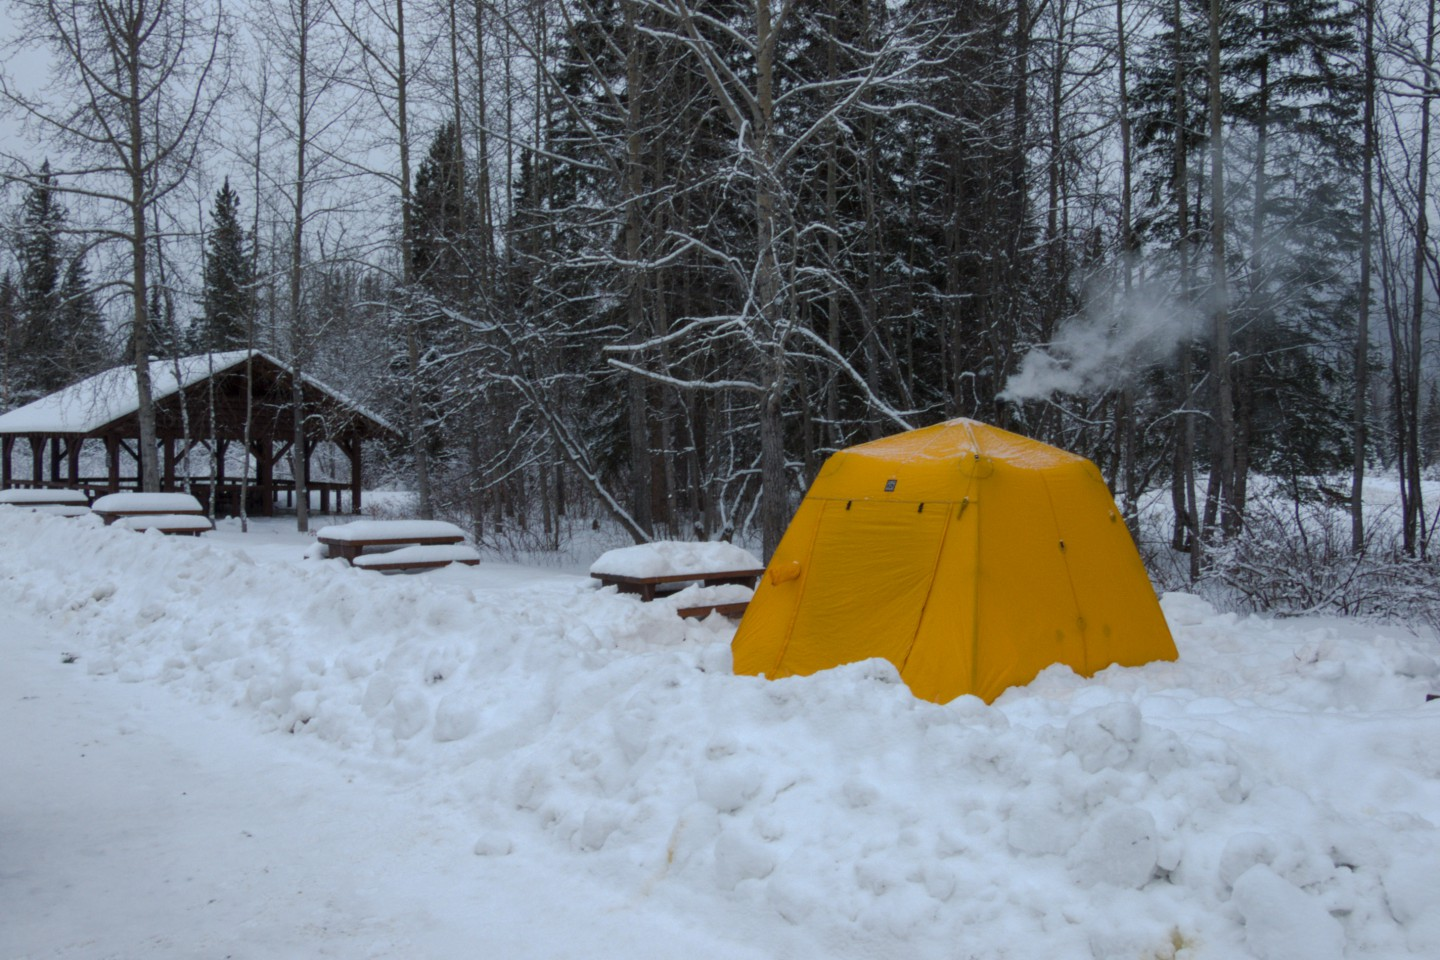 C&ing at Liard Hot Springs in the Arctic Oven & Liard Hot Springs Winter | The Road Chose Me